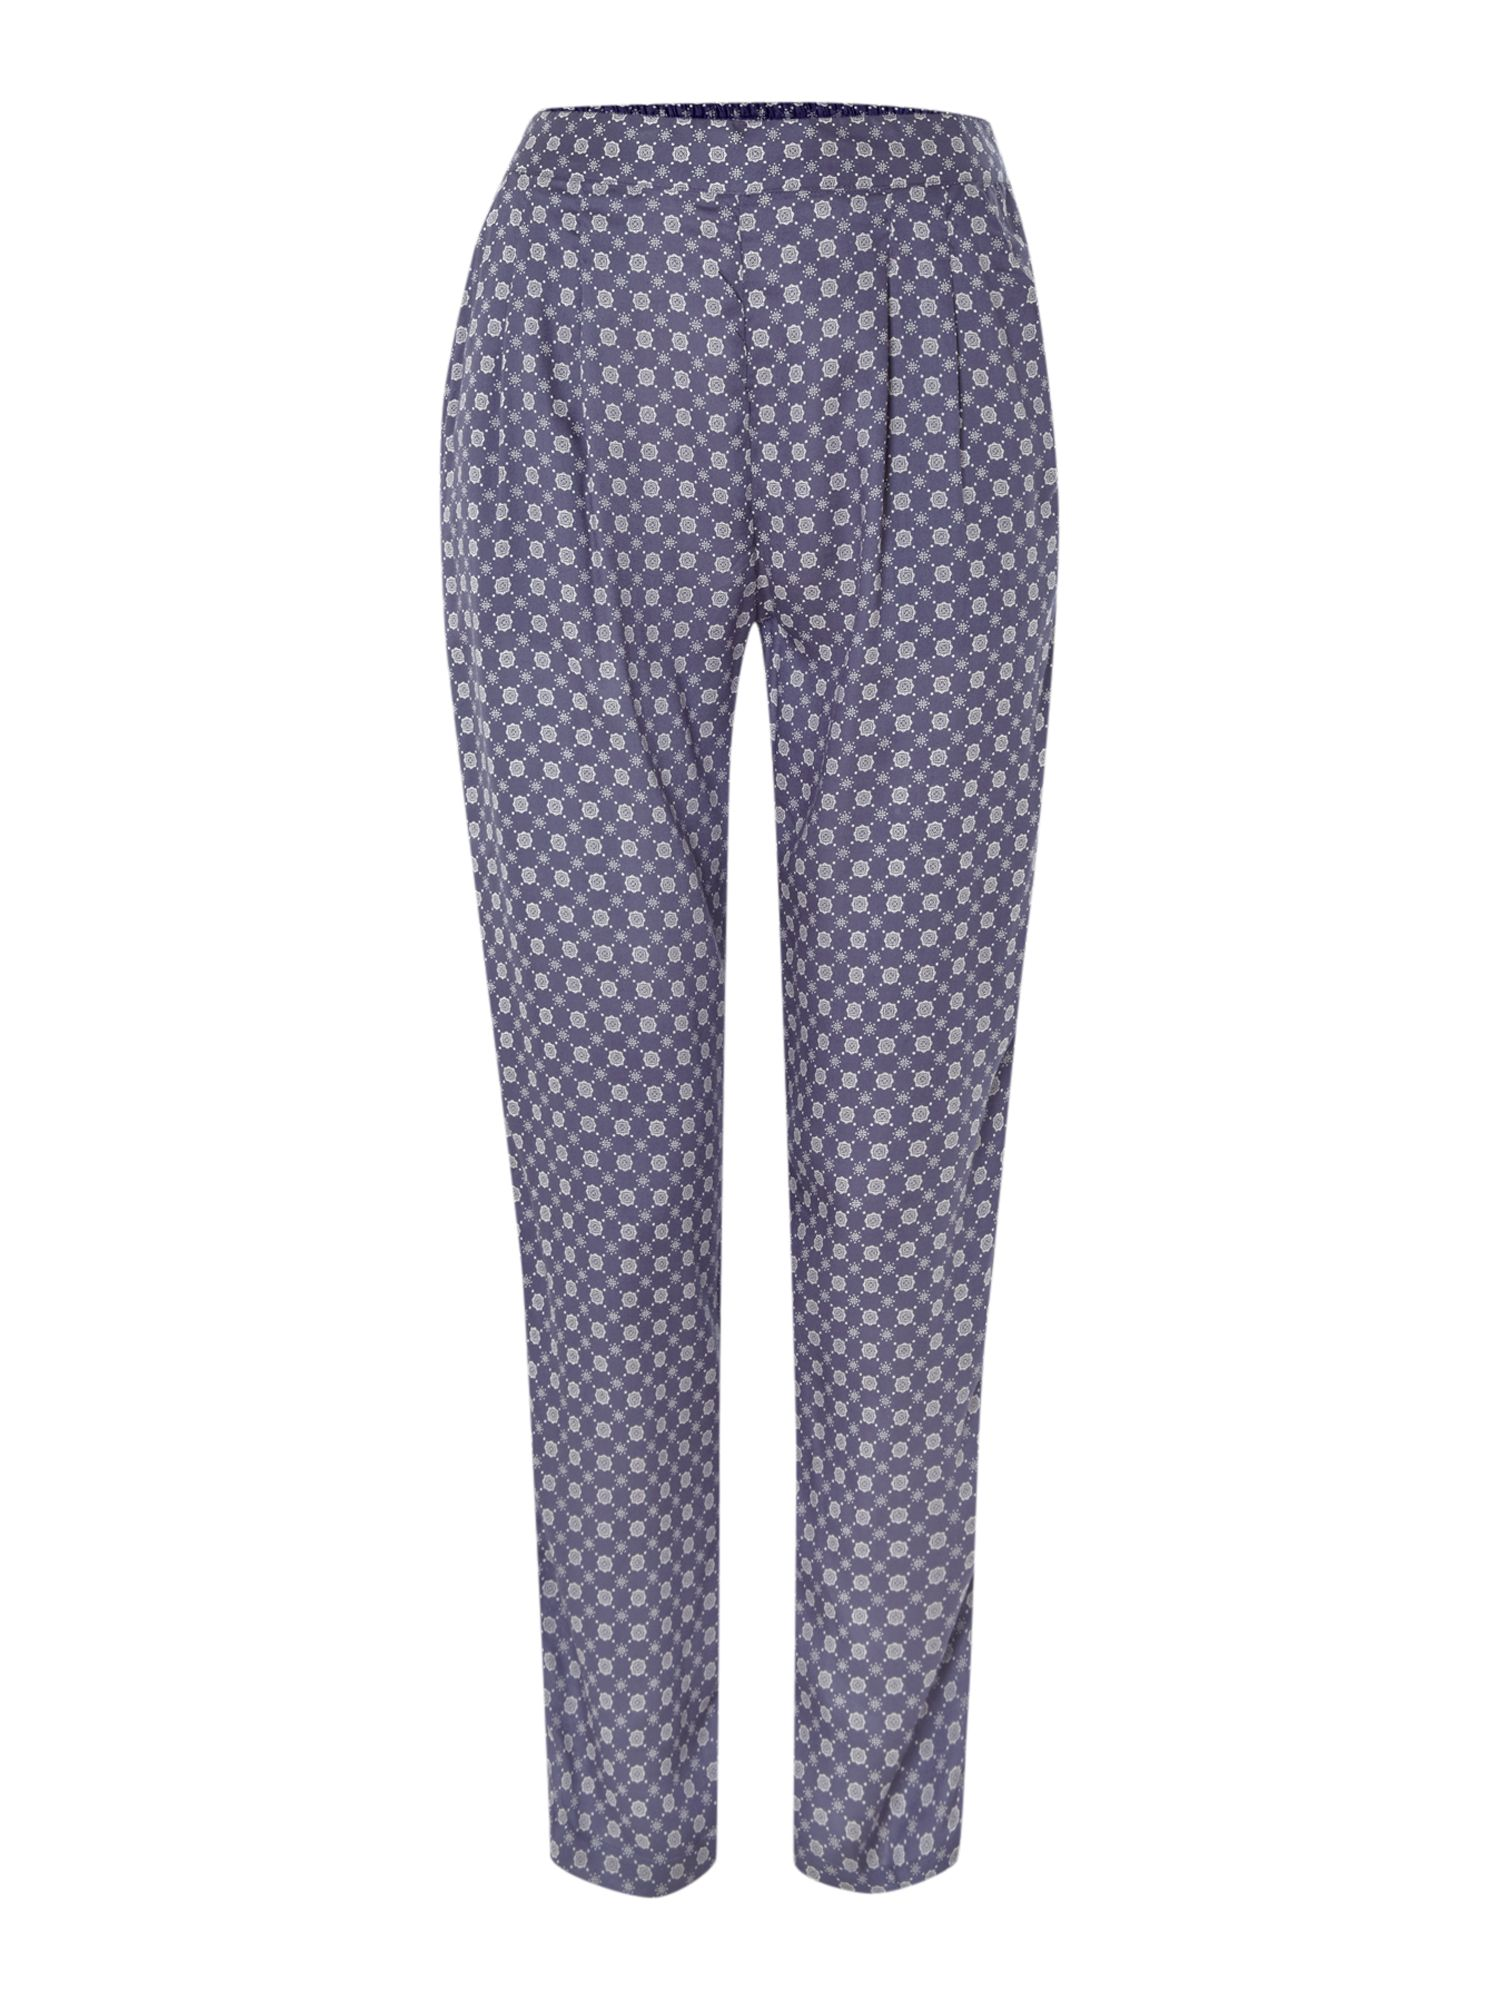 Orbit print trouser